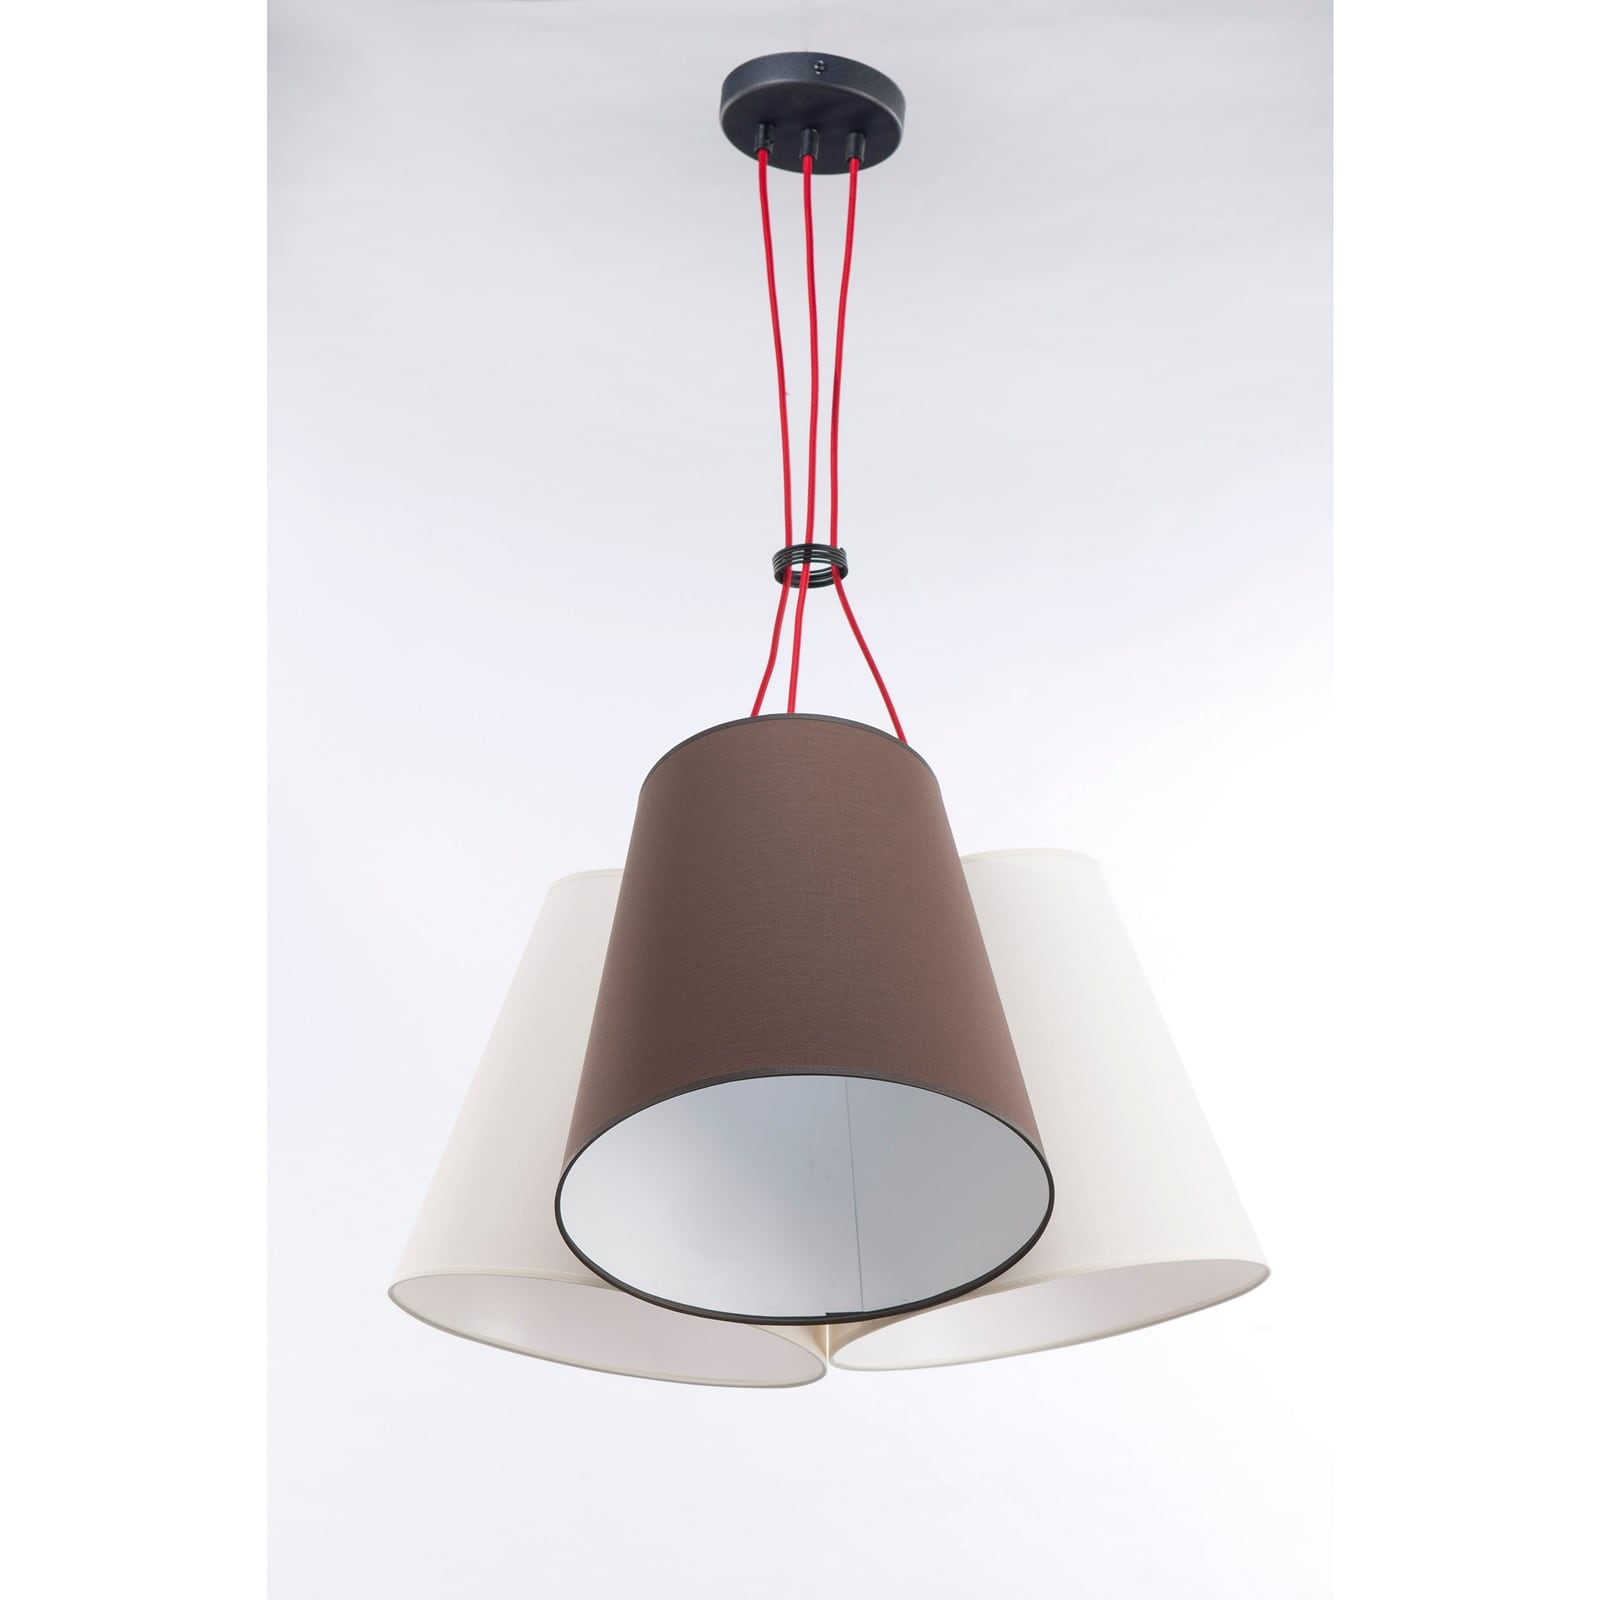 Hanging Lamp NECAR 3 No. 3218